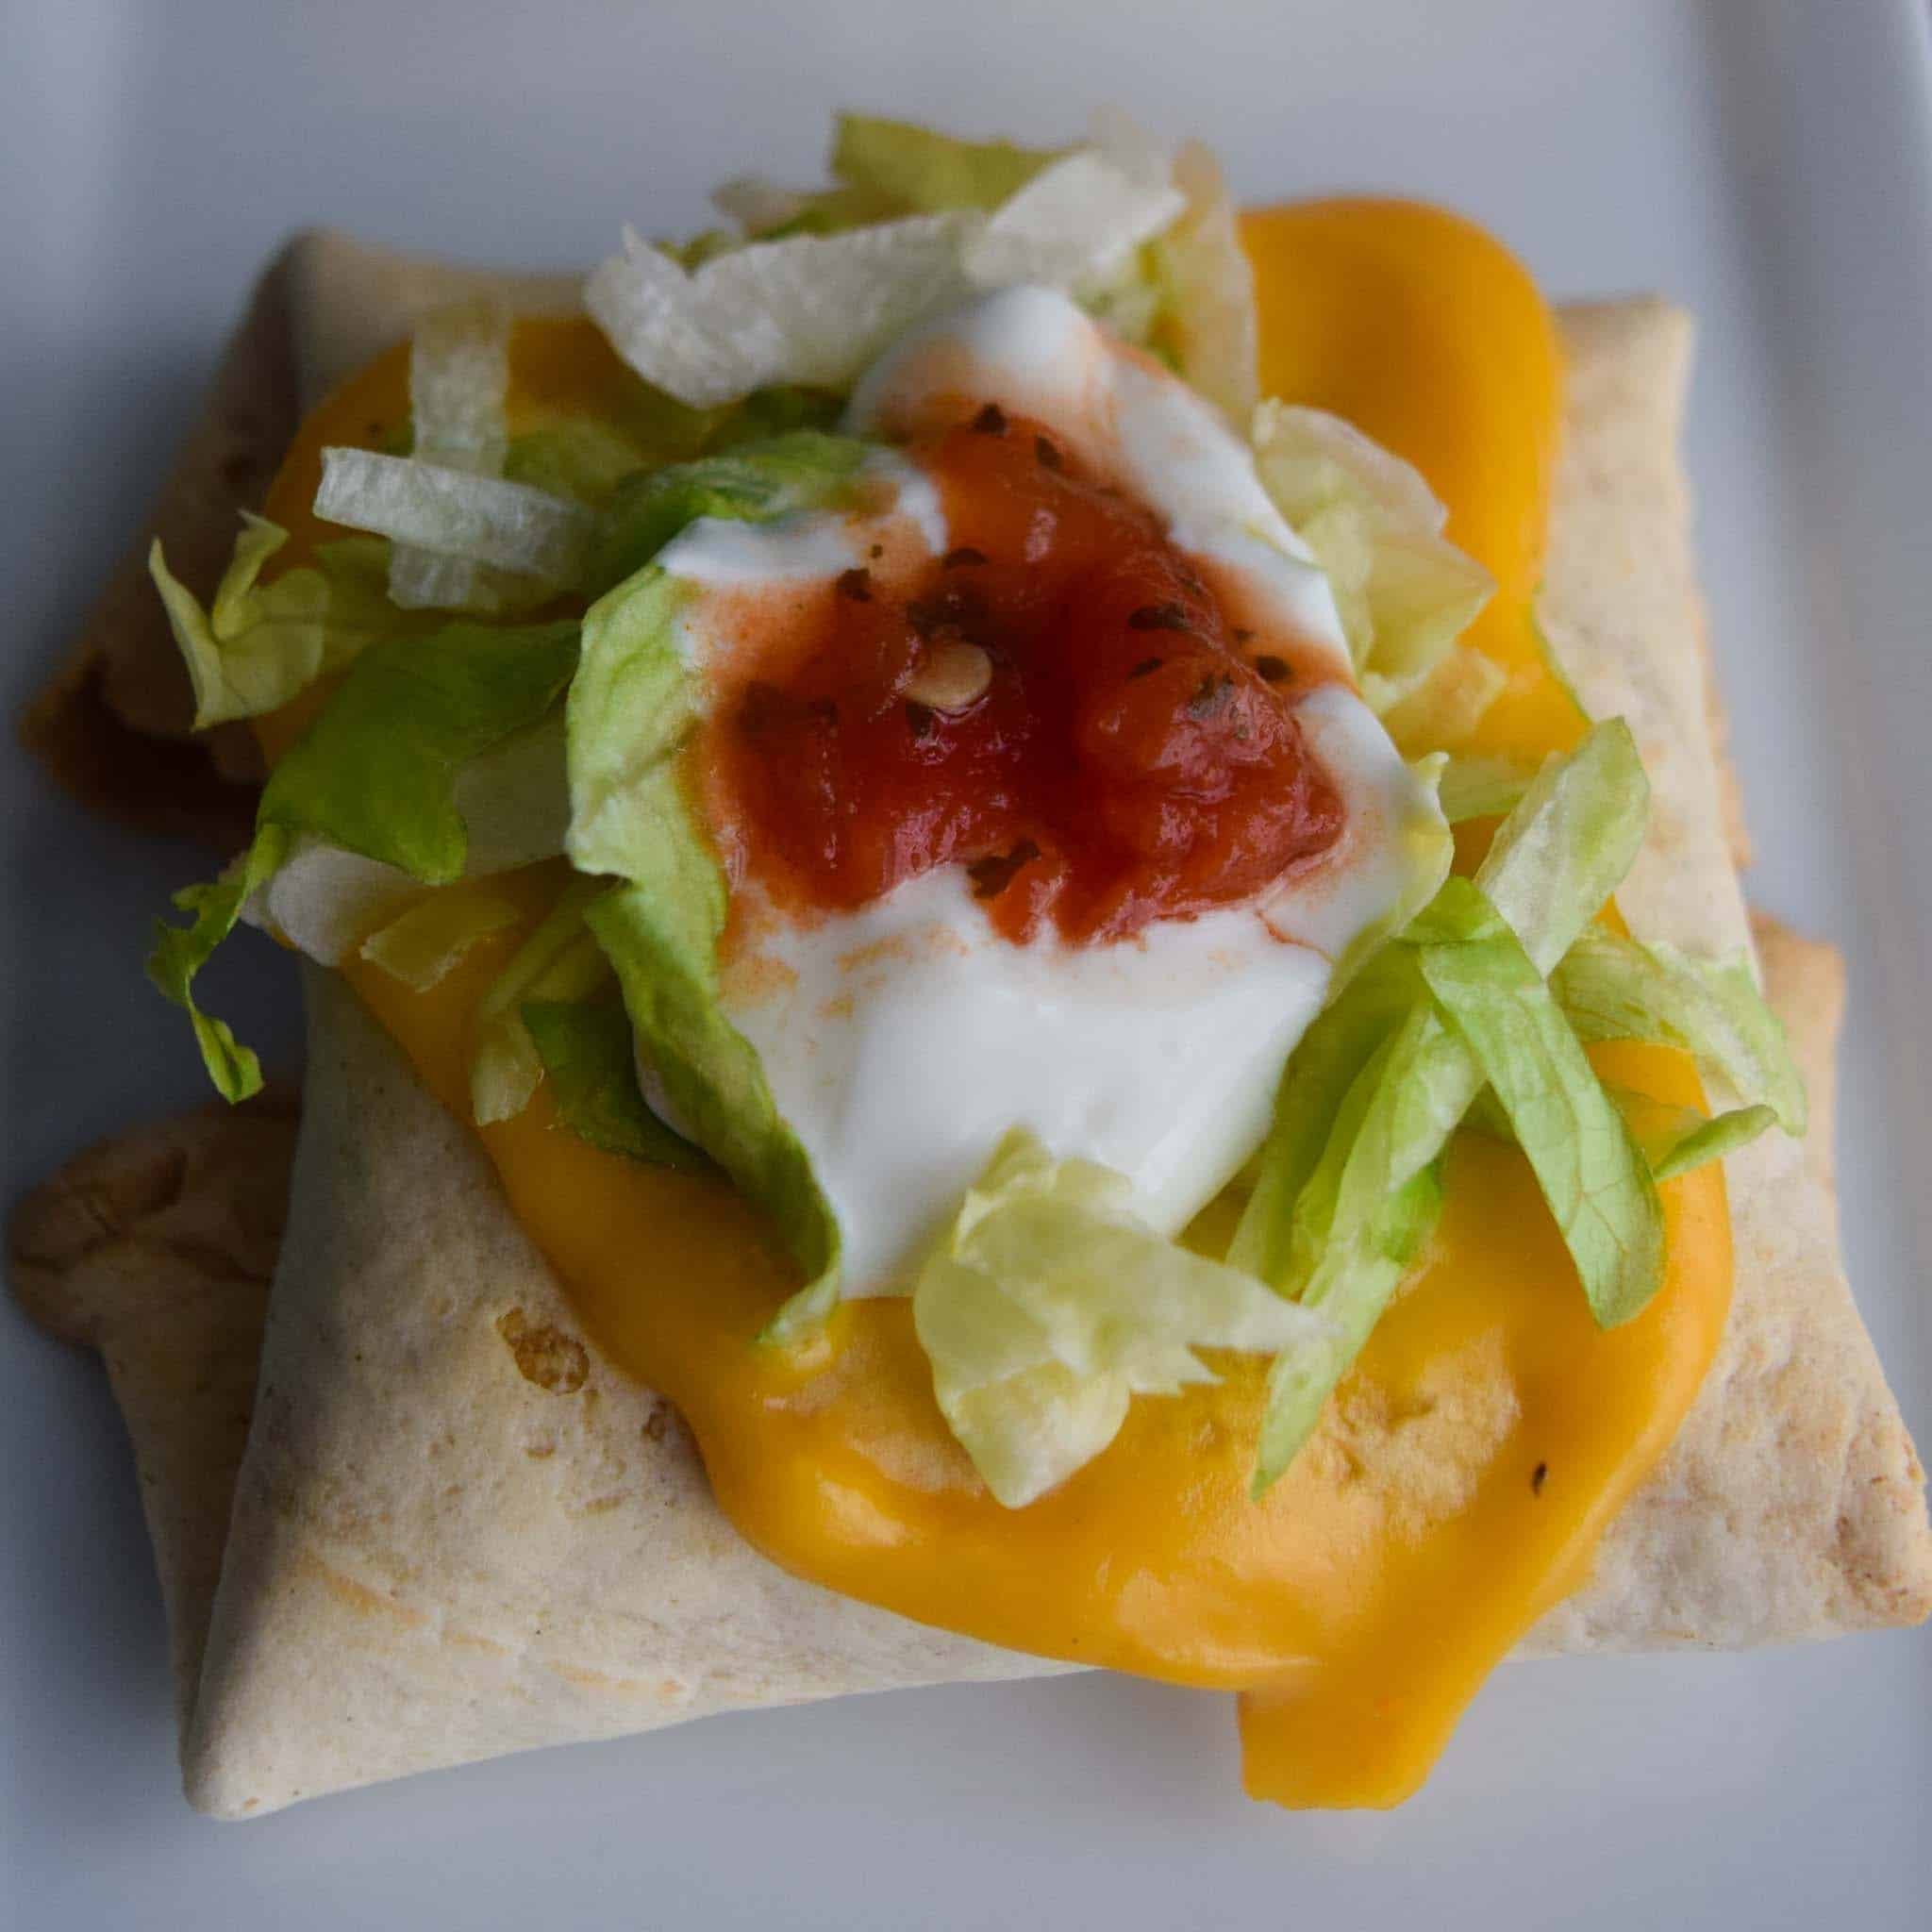 Baked Chimichangas with Guilt-Free Cheesy Sauce topped with lettuce sour cream and salsa close up view